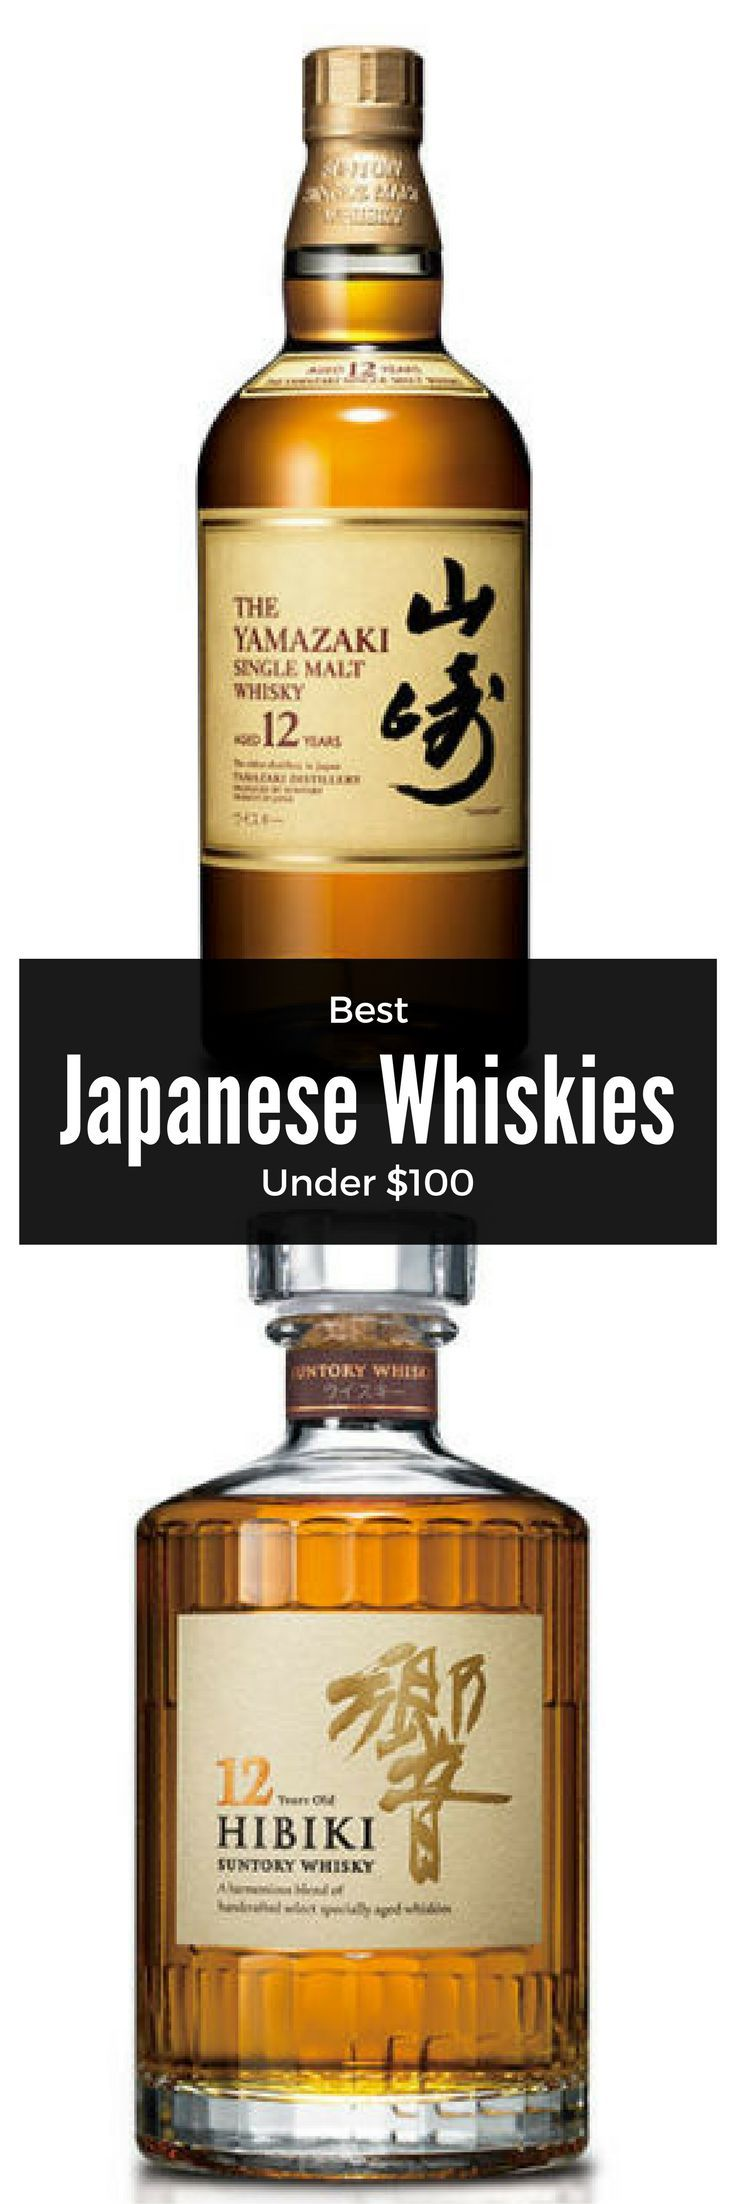 Japanese whisky is a relatively new category on the Western market, but even so, it has quickly earned its place alongside the greatscotchesas some of the best in the world. WhenYamazakiearned the title of World's Best Whisky inJim Murray's Whisky Bible 2015with their Single Malt Sherry Cask, it made headlines around the globe and put Japan firmly on the map as a powerhouse of distilling. #LiquorReviews #Whiskey #JapaneseWhiskey